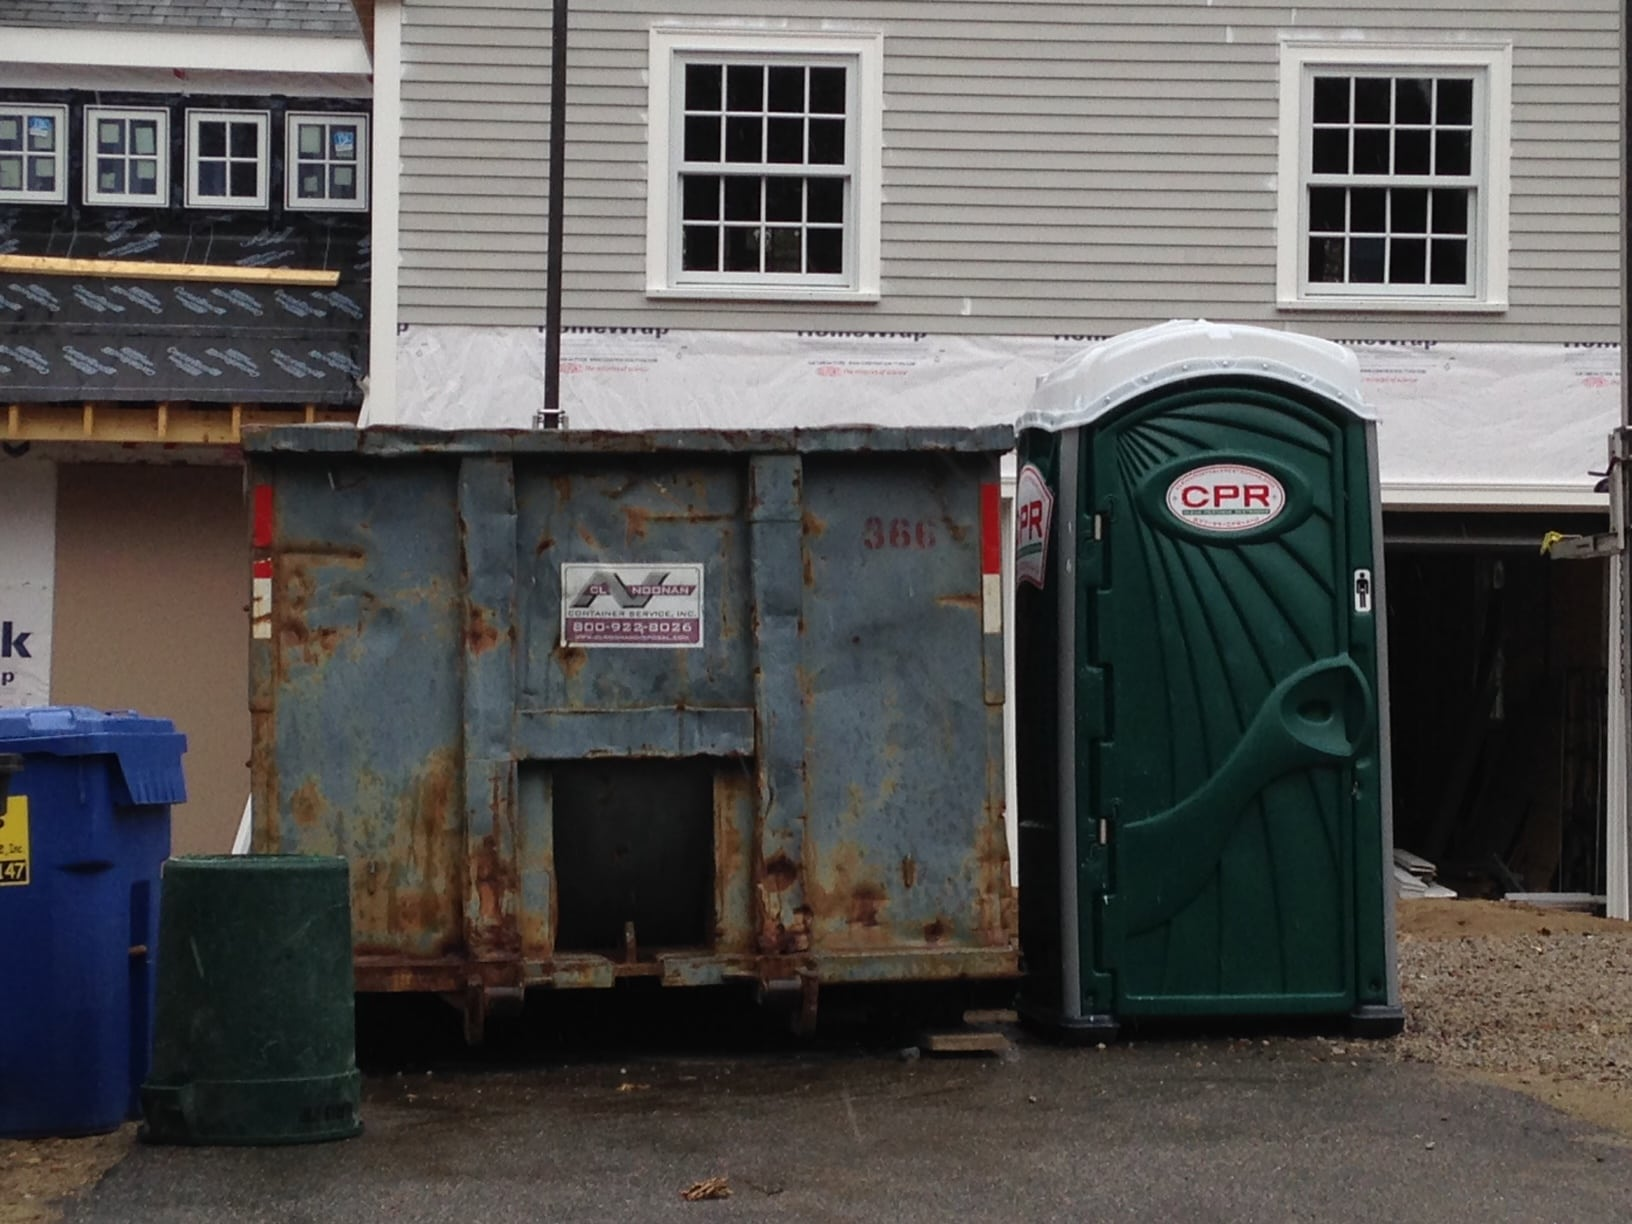 Here, the battered dumpster stands in contrast to the newness of the Port-a-potty and the renovated house itself.